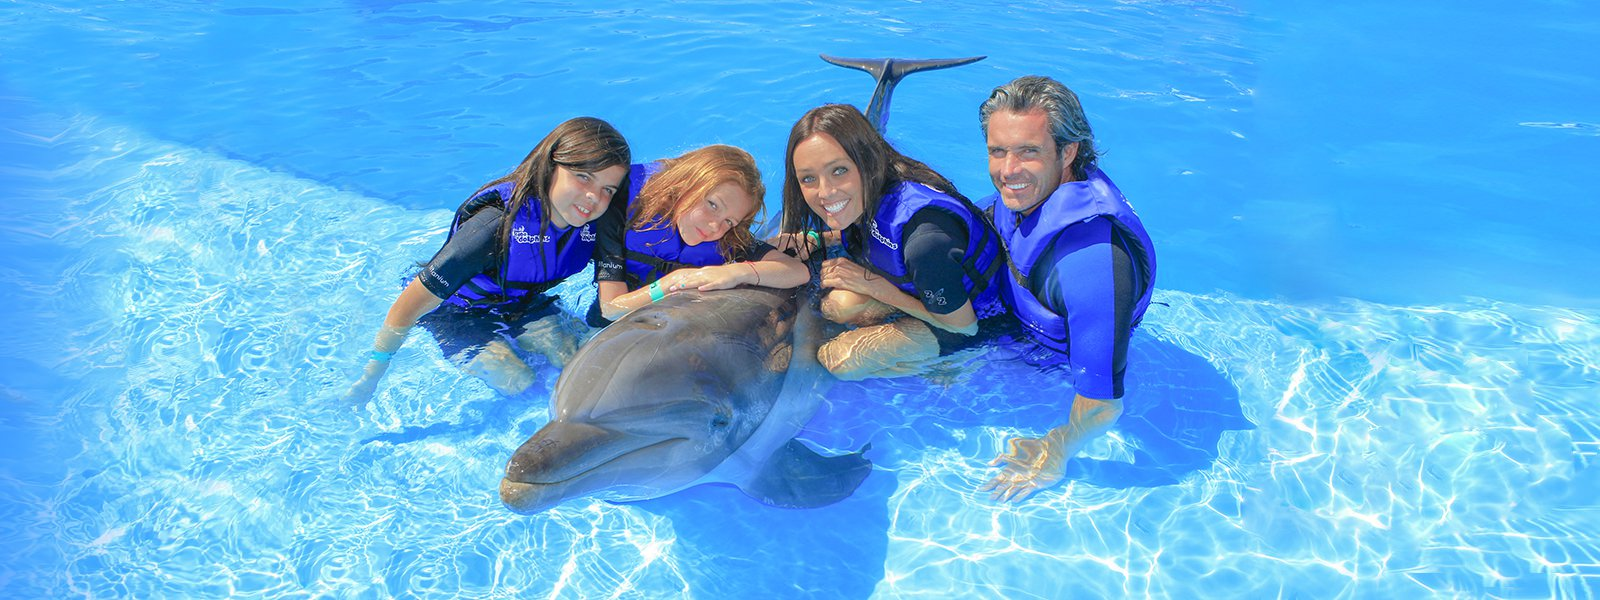 dolphin-swim-ride-experience-cabo-adventures-8.jpg